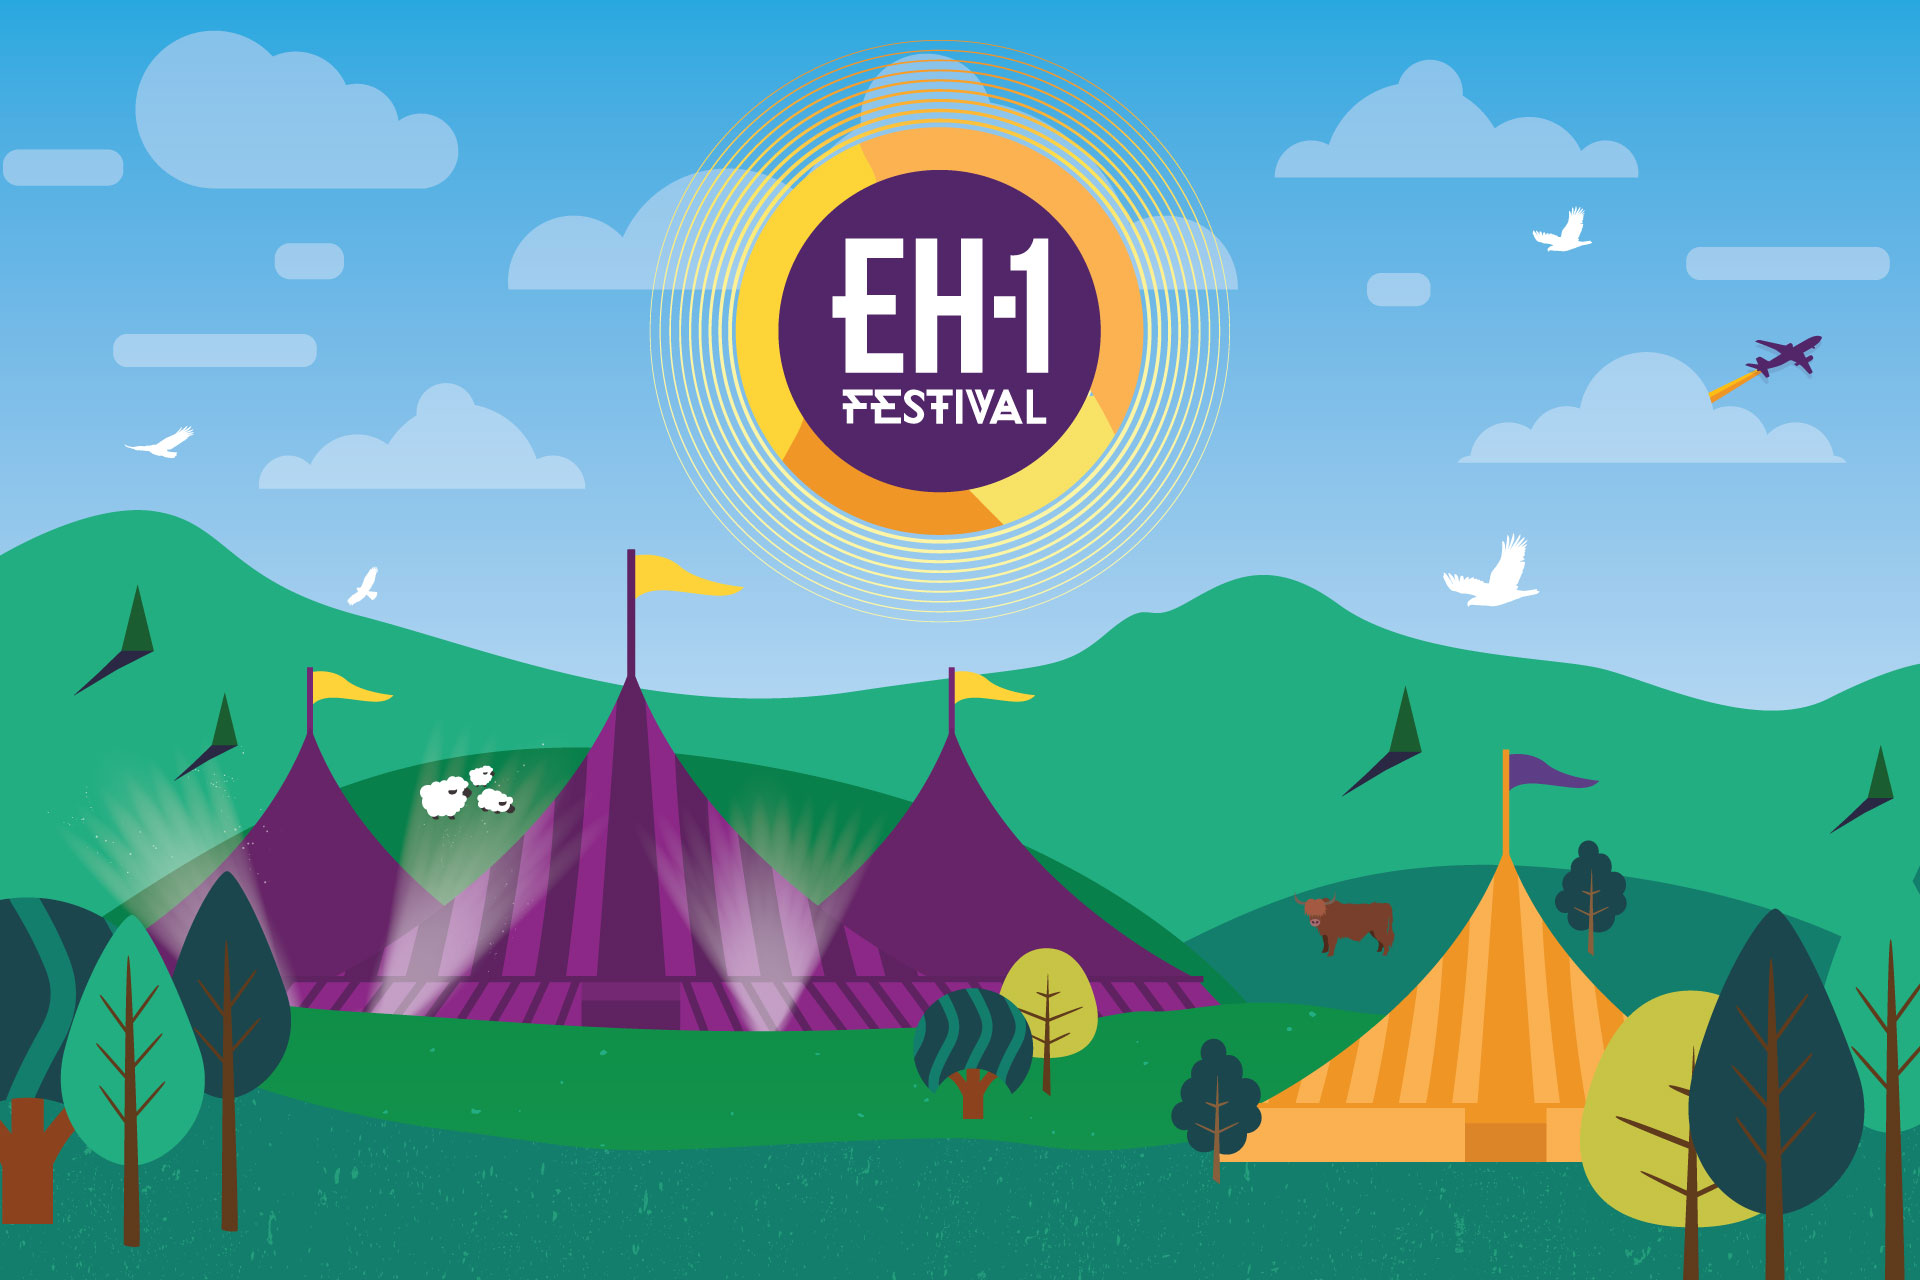 EH1 Festival Illustration